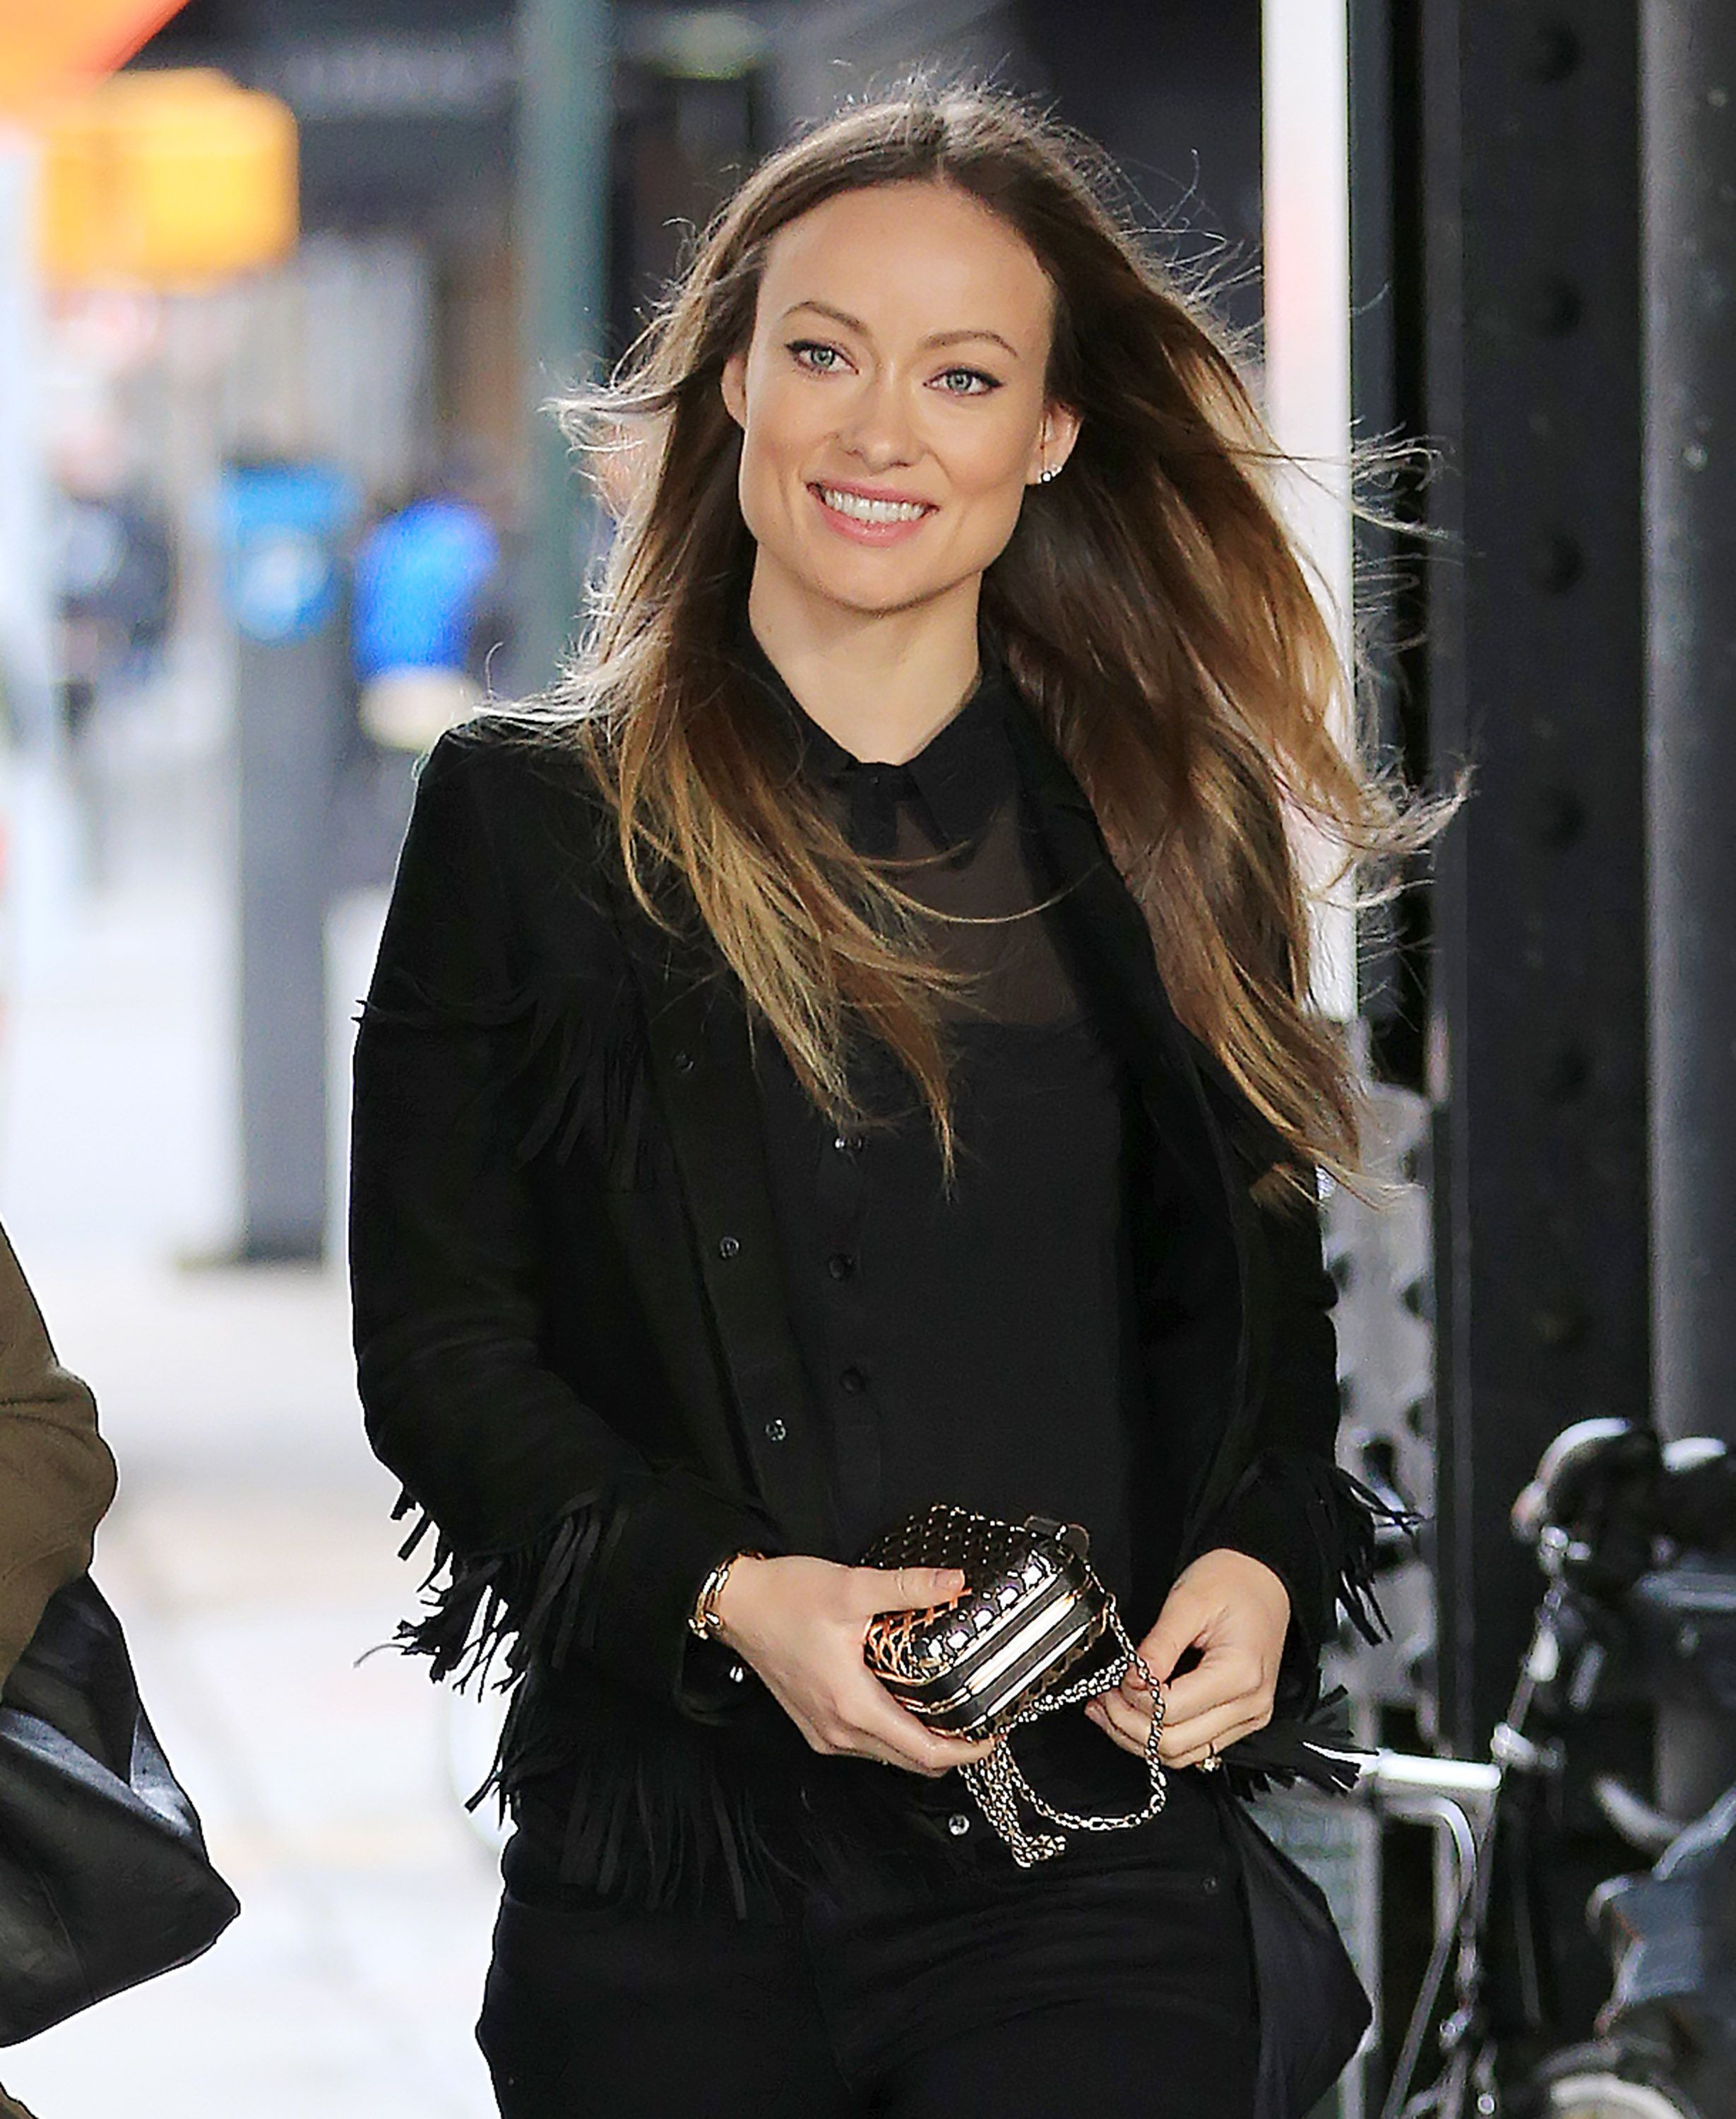 Tape up haircut for boys olivia wilde out in new york city   olivia wilde